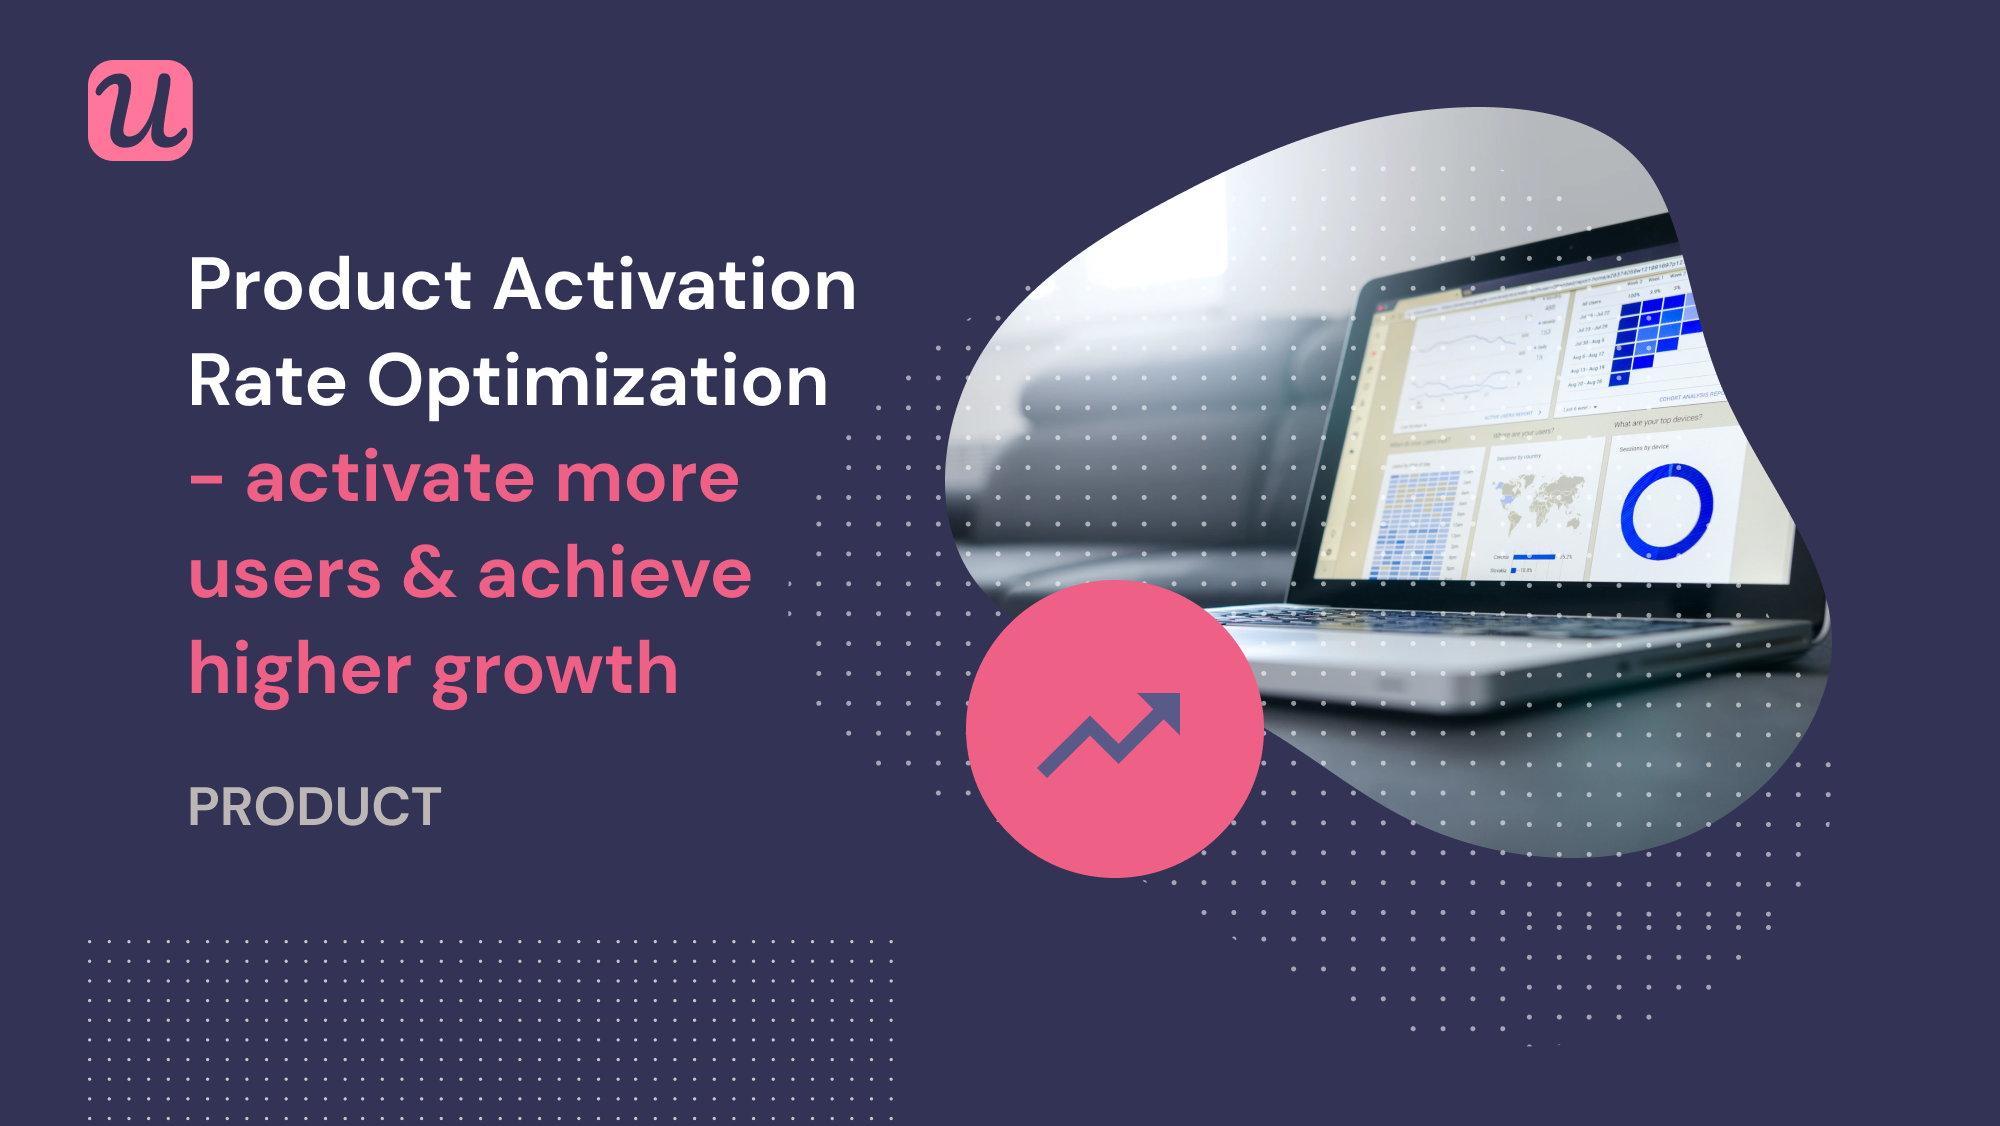 Product Activation Rate Optimization